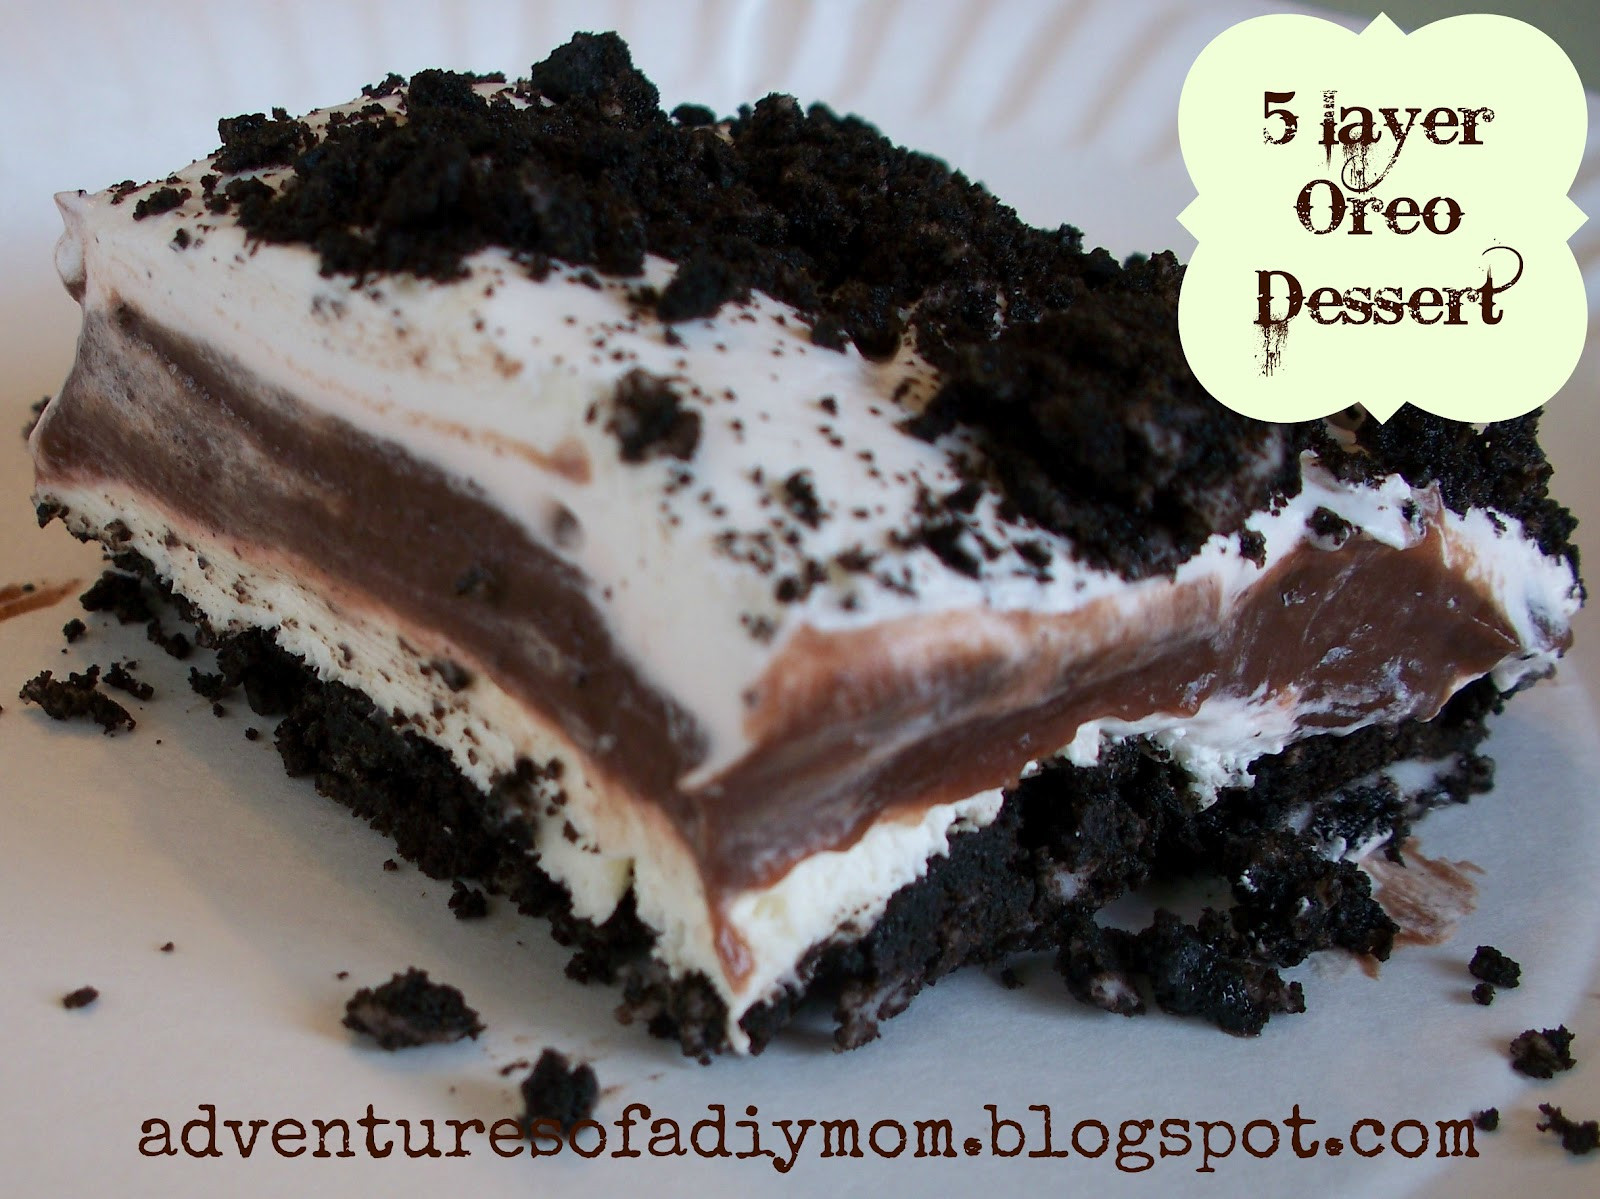 Oreo Dessert Recipes  5 Layer Oreo Dessert Adventures of a DIY Mom